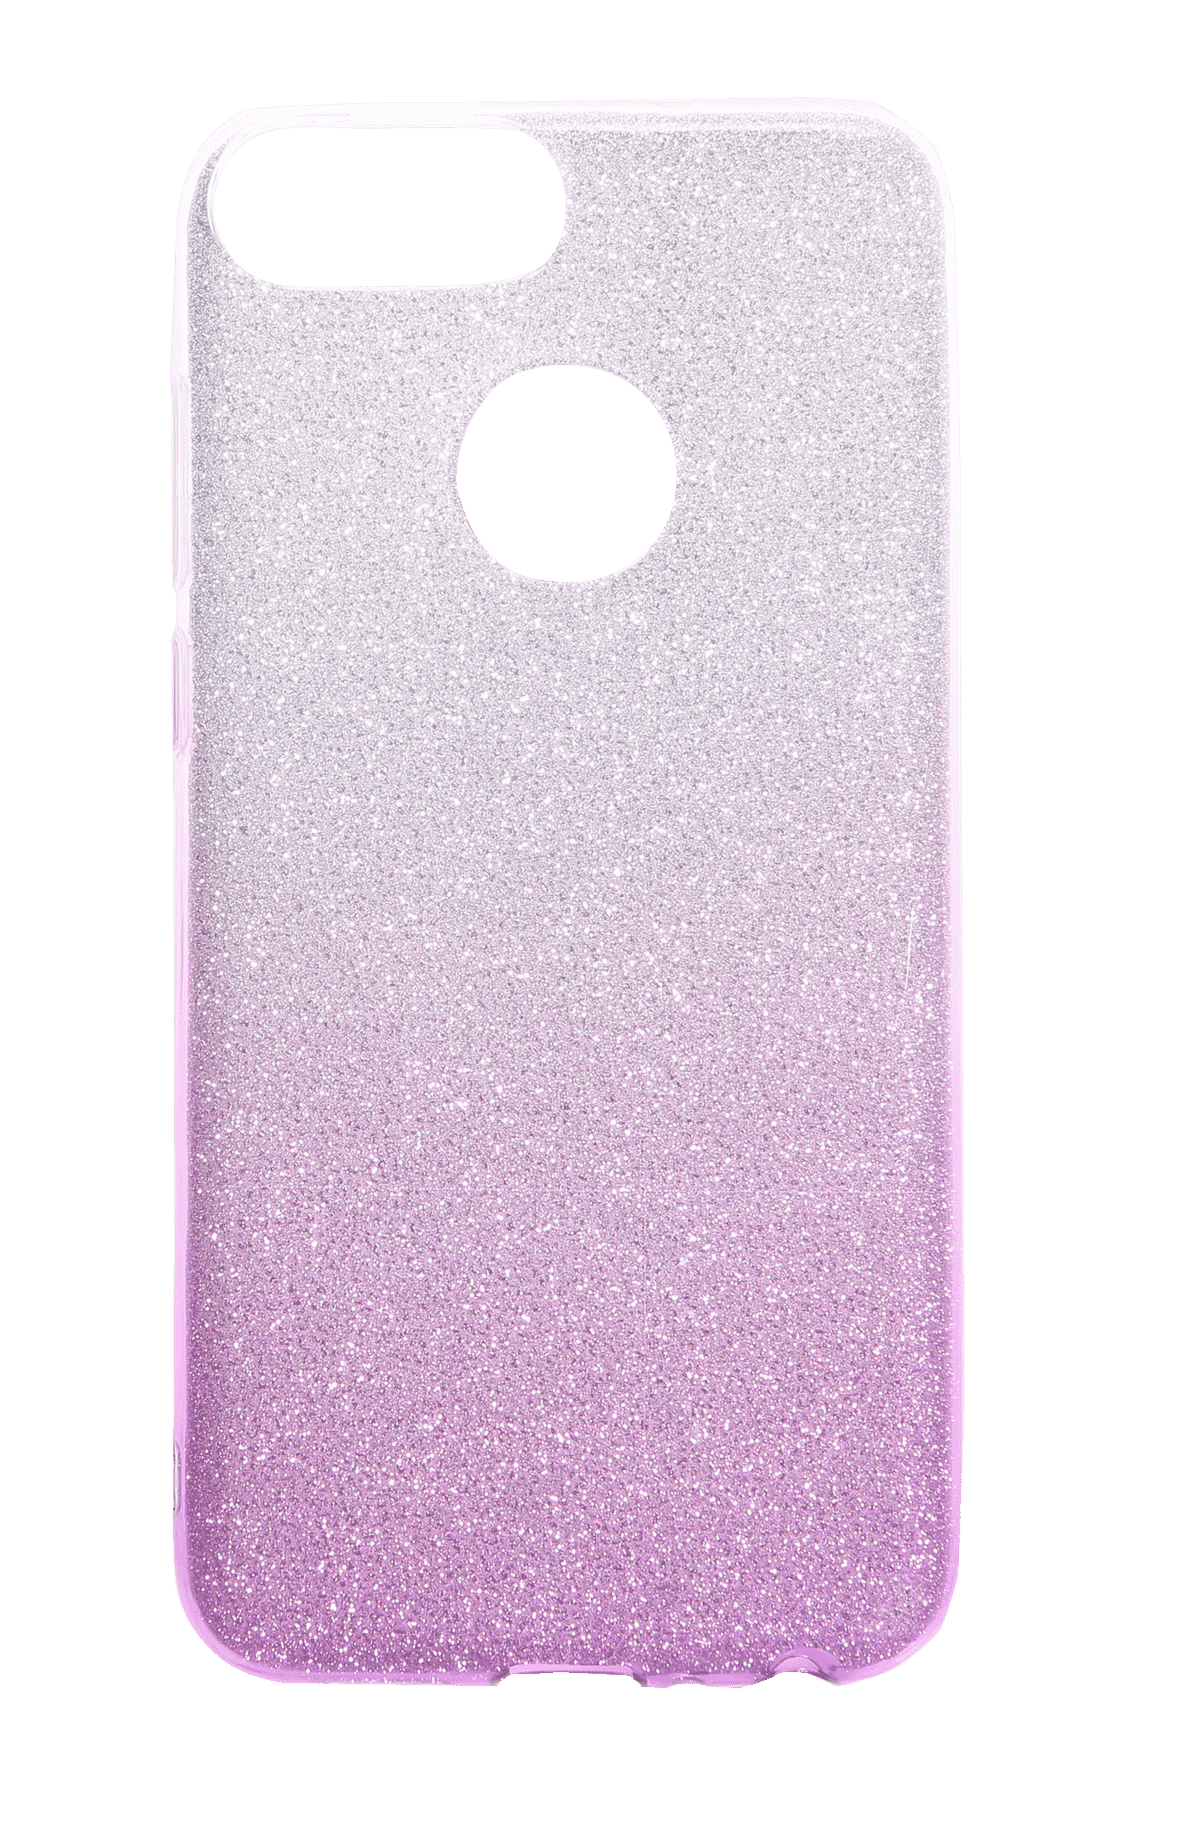 V-DESIGN VSP 006 für Huawei P Smart in Violett